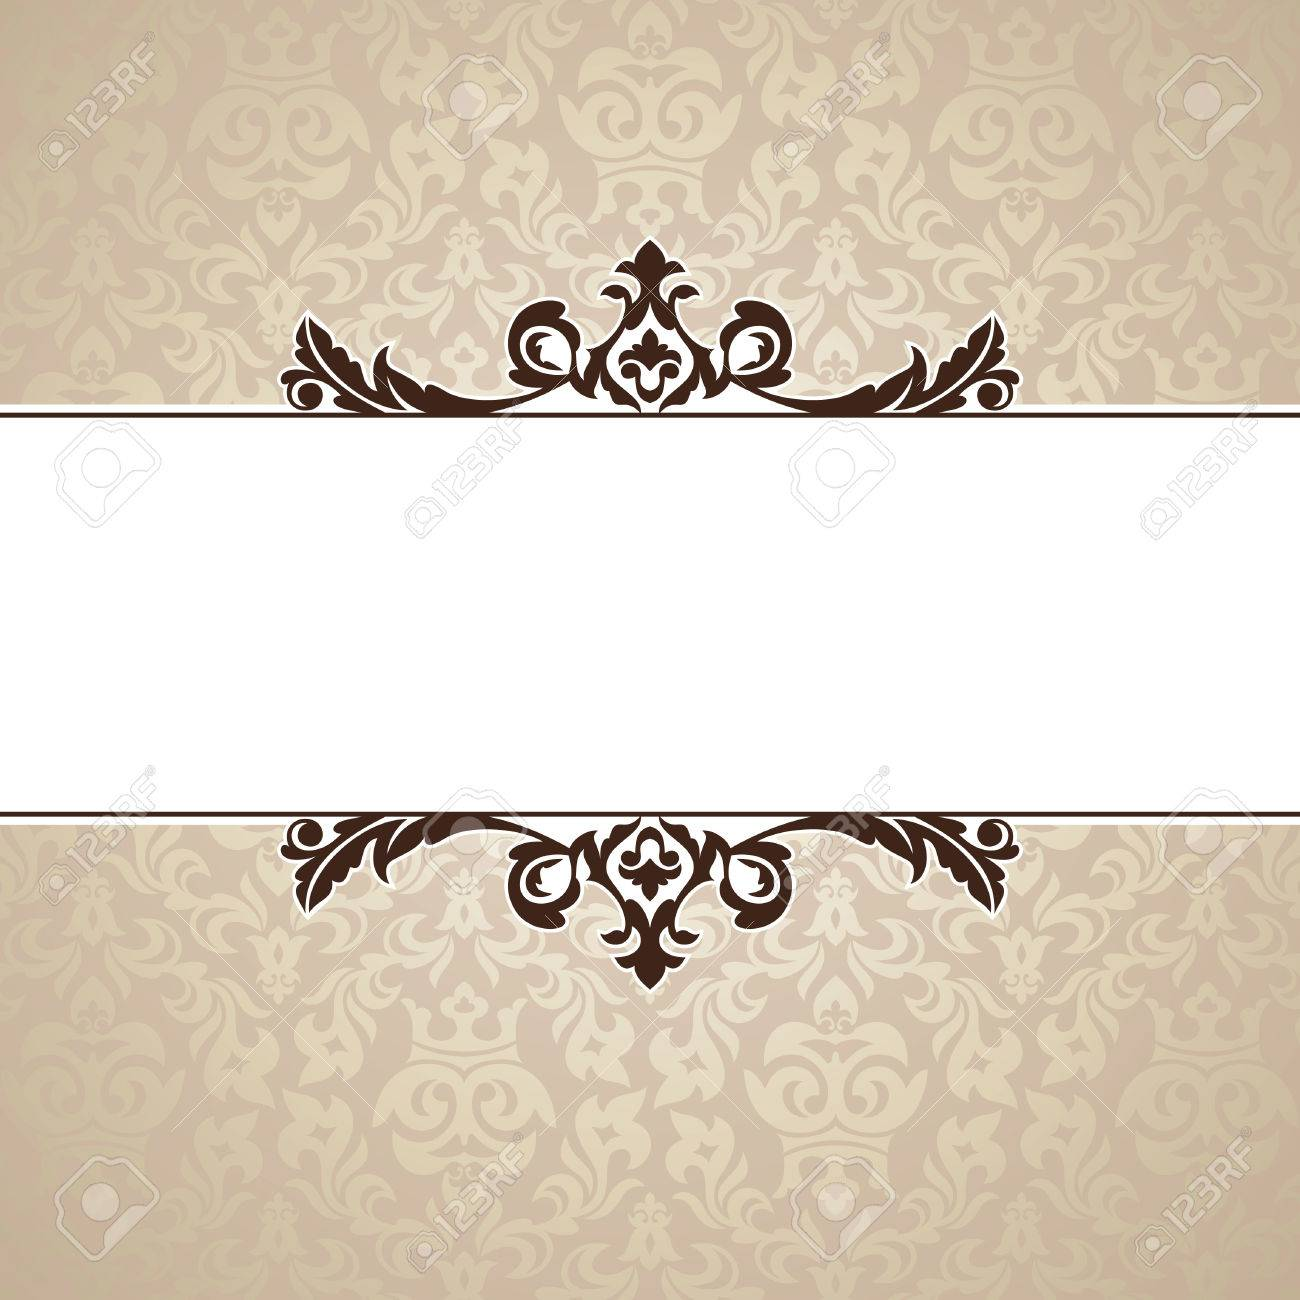 abstract cute decorative vintage frame   illustration Stock Vector - 8756468